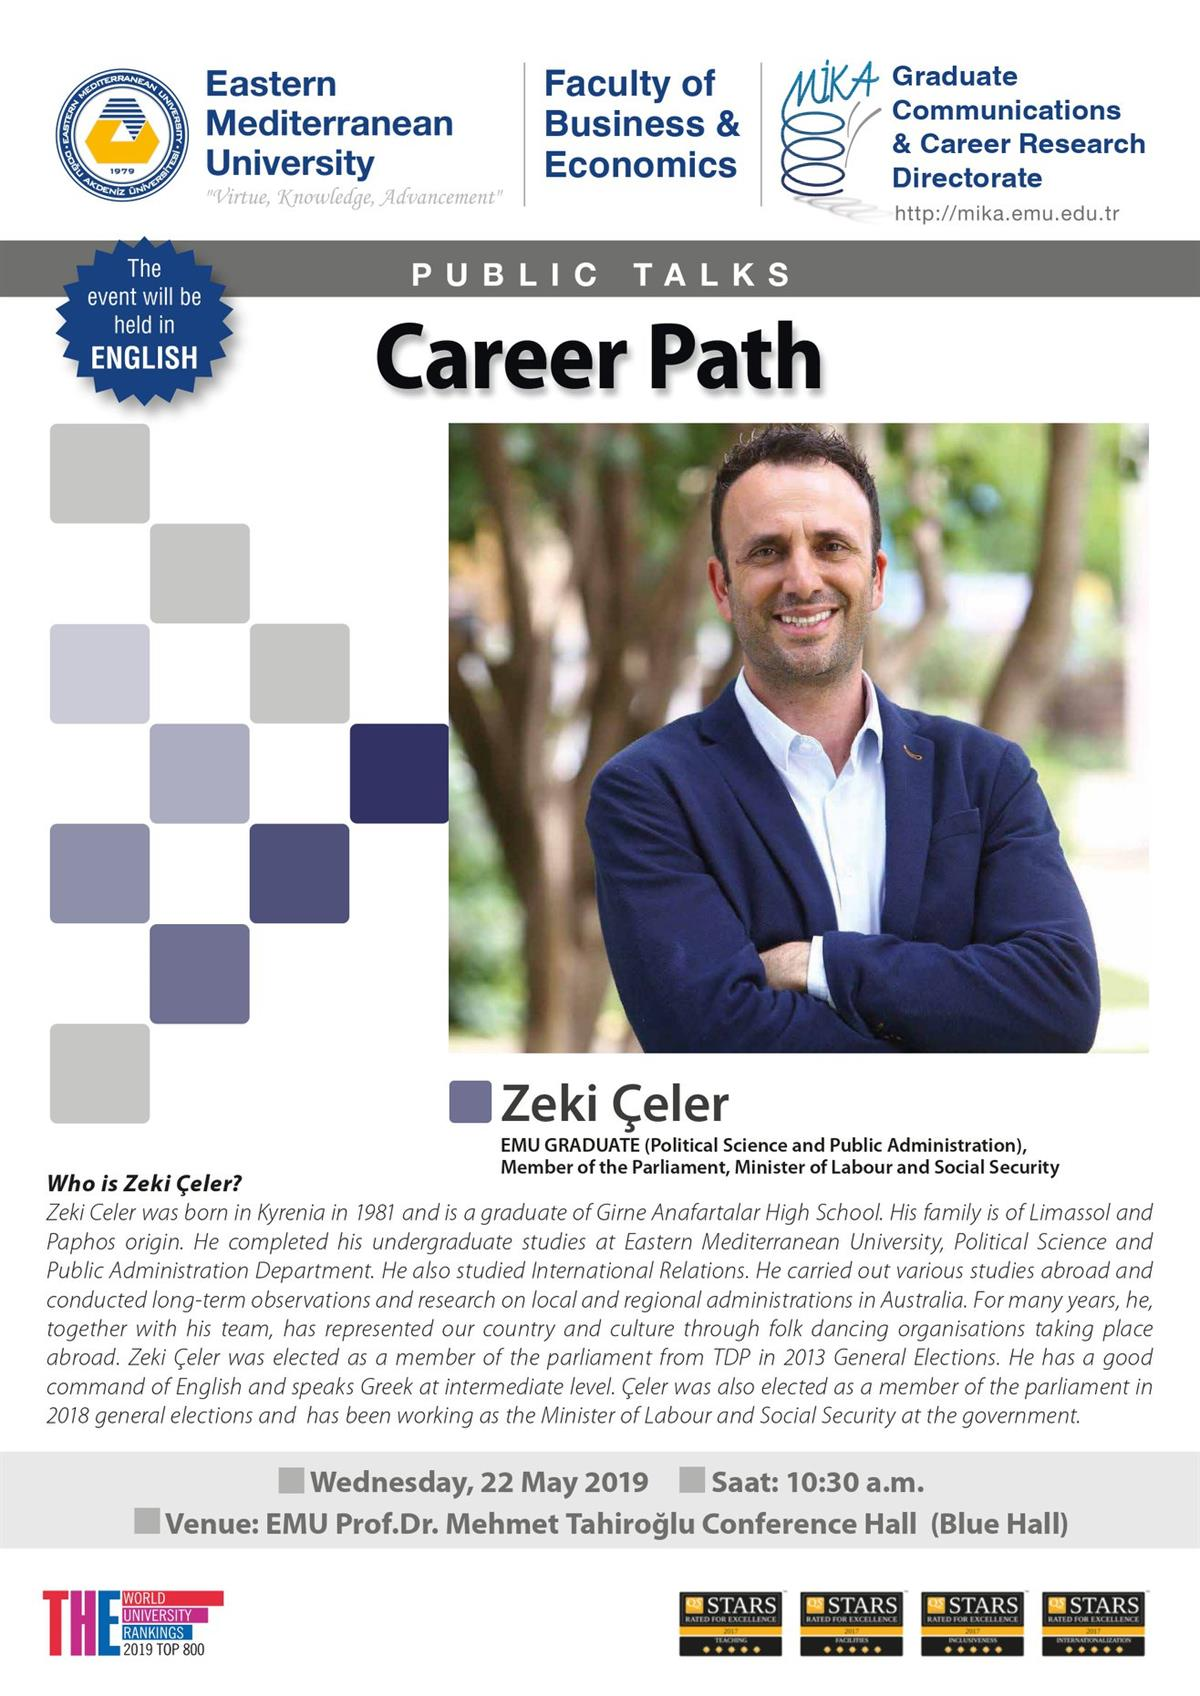 Career path by Zeki Celer